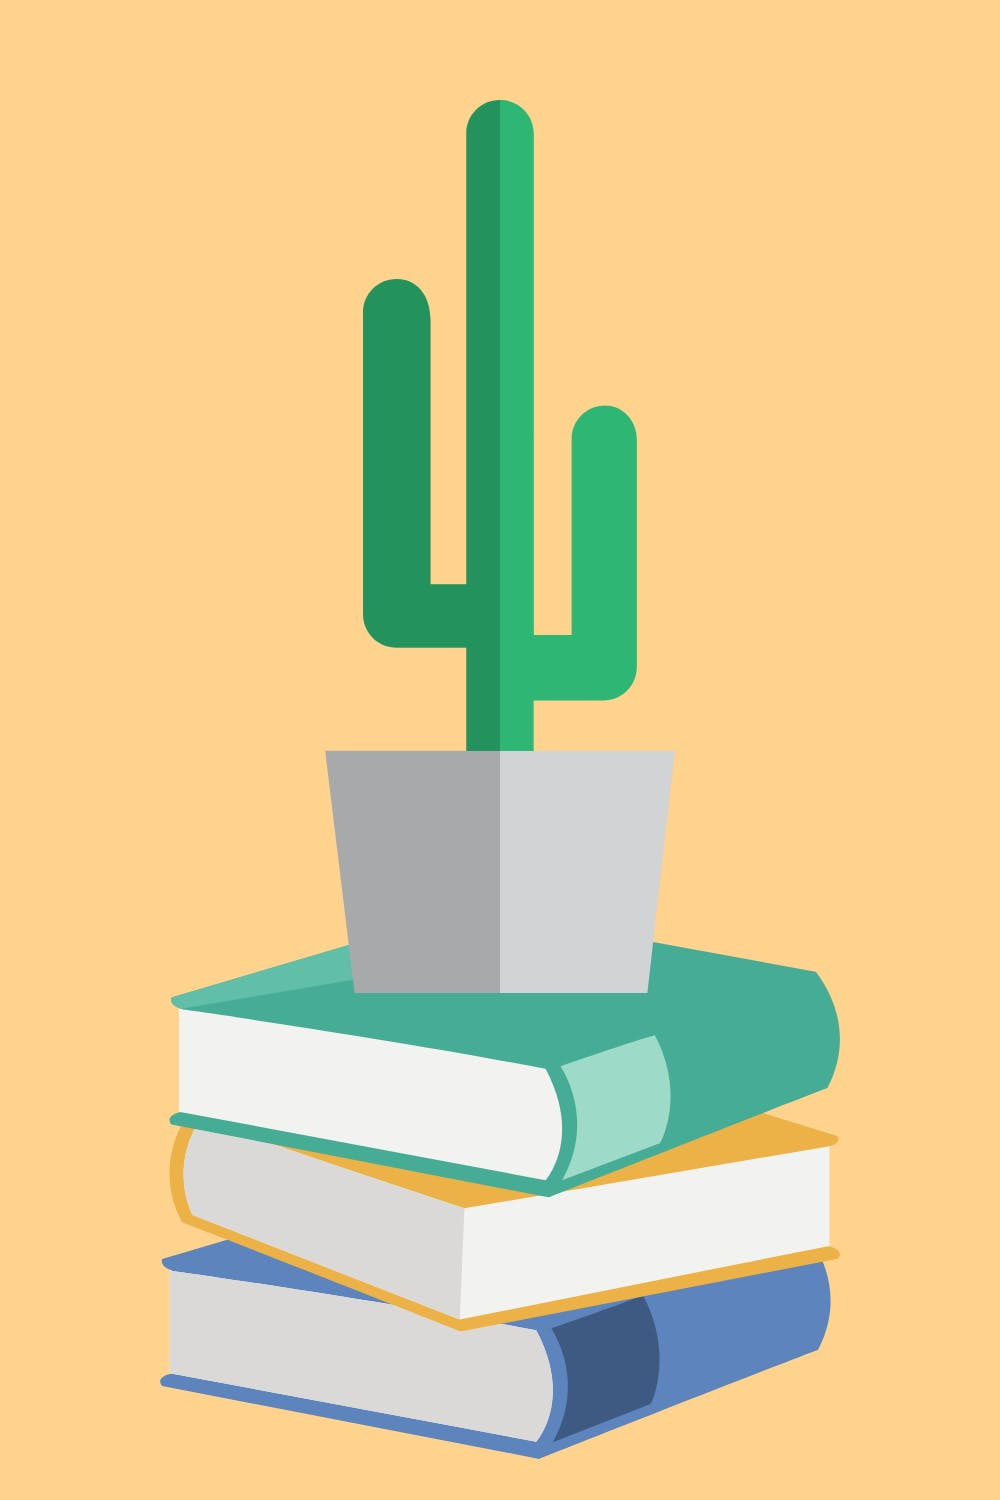 three books stacked on top of each other with a cactus on top